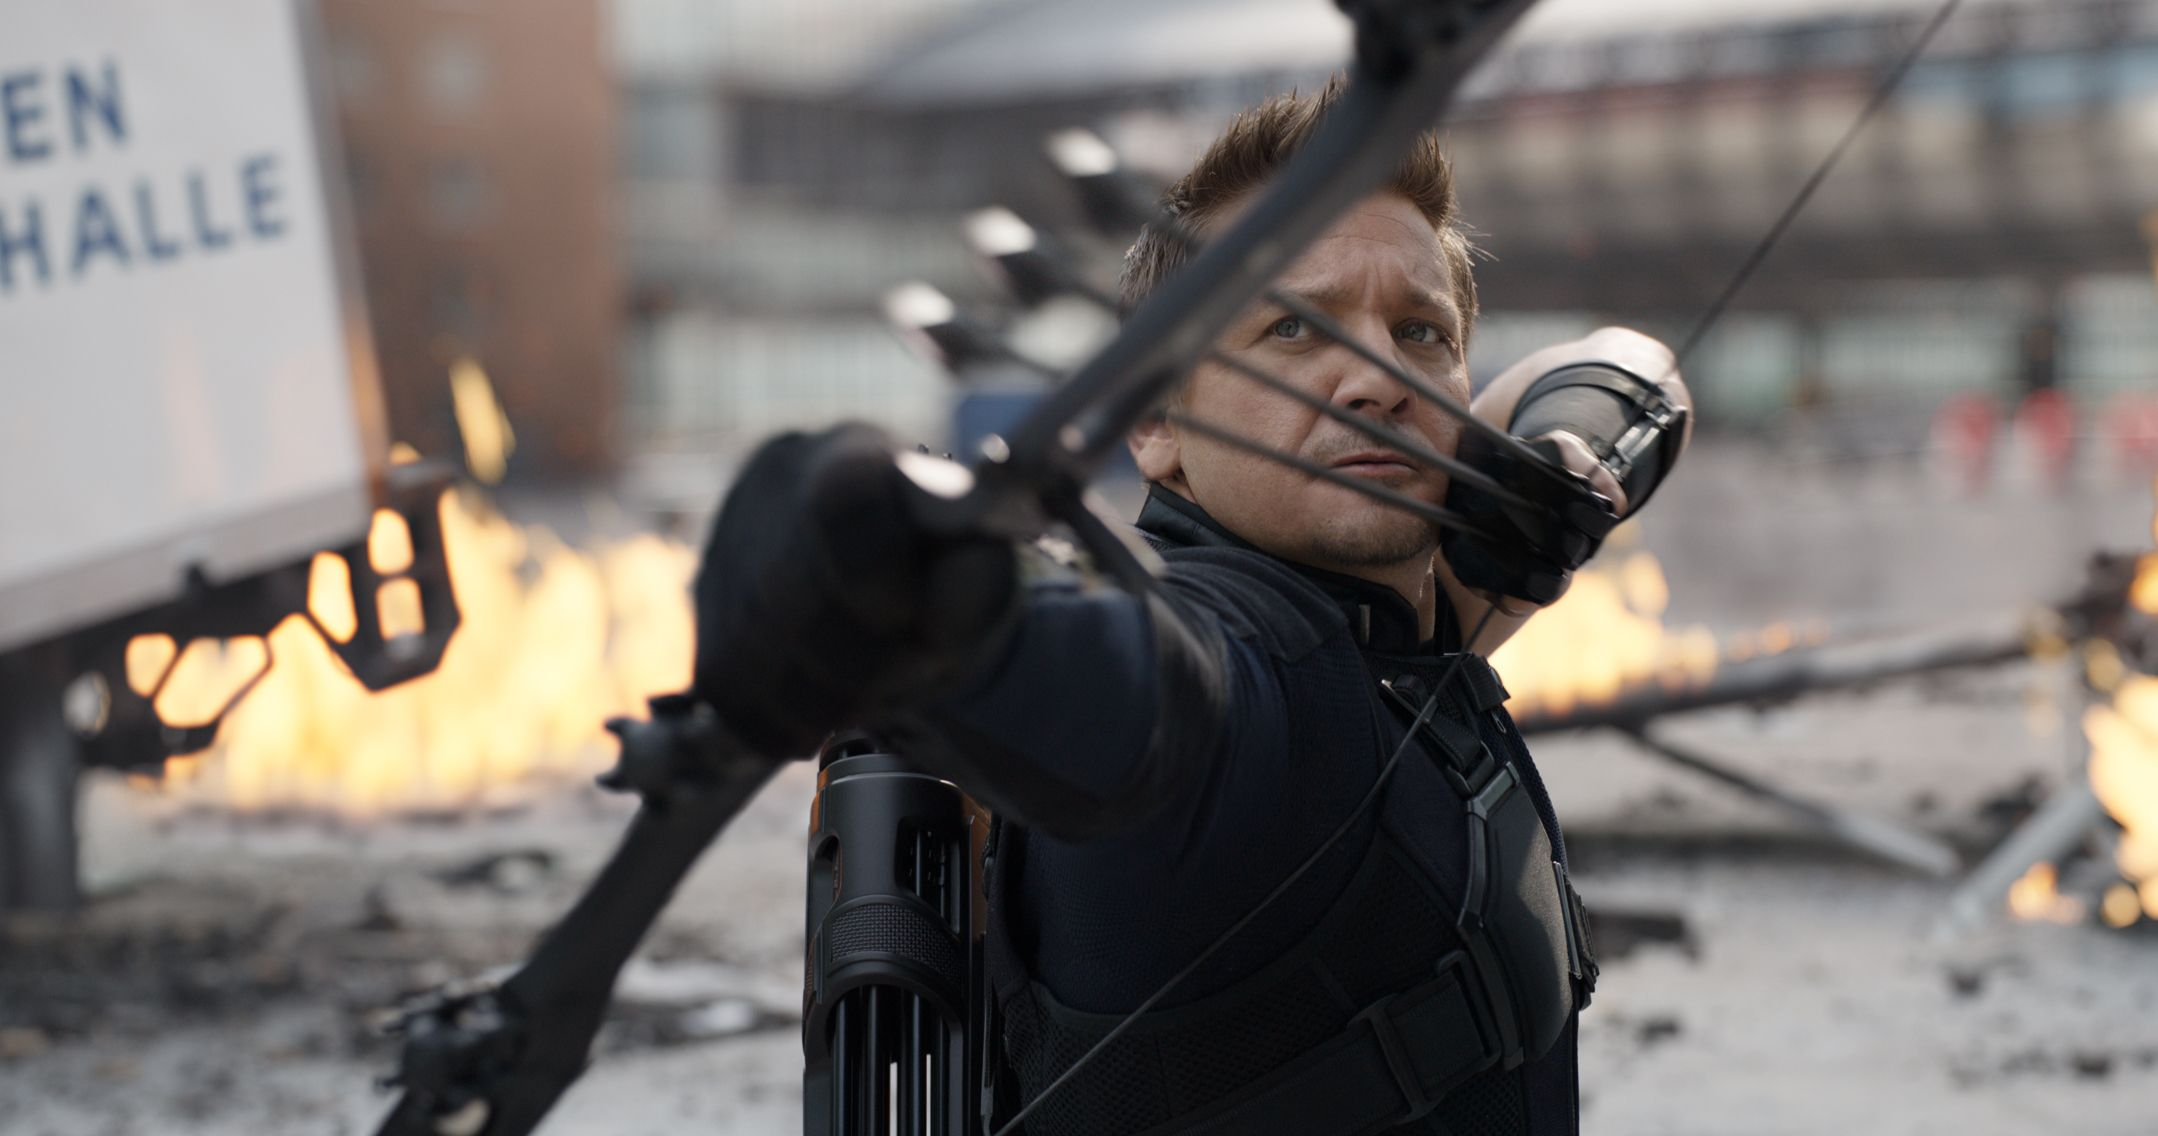 Hawkeye Series Starring Jeremy Renner In Works At Disney+